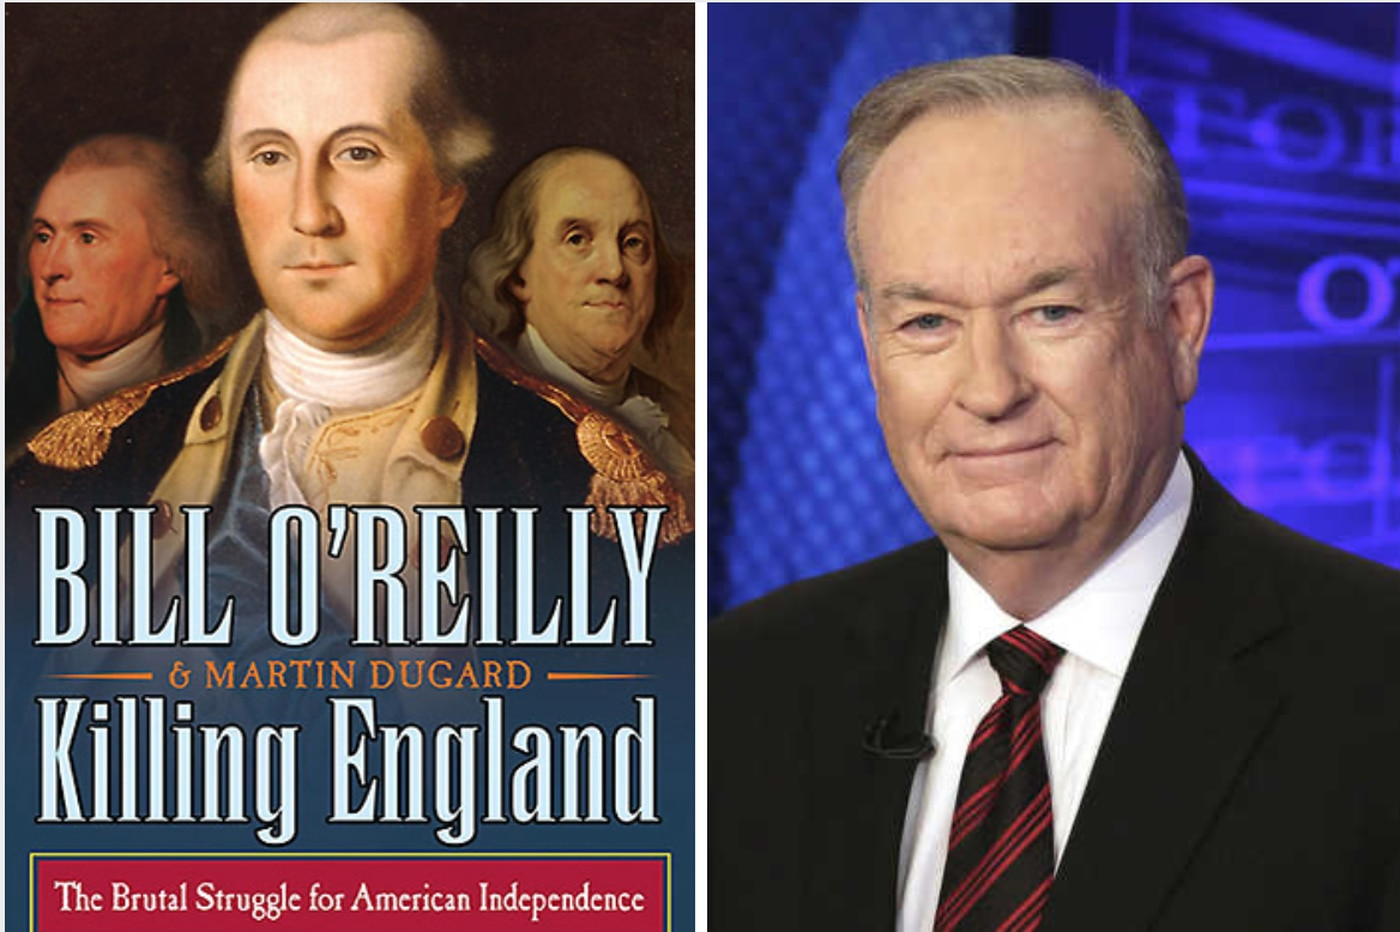 Bill O'Reilly mastered the art of turning history into fascinating reads | Dom Giordano